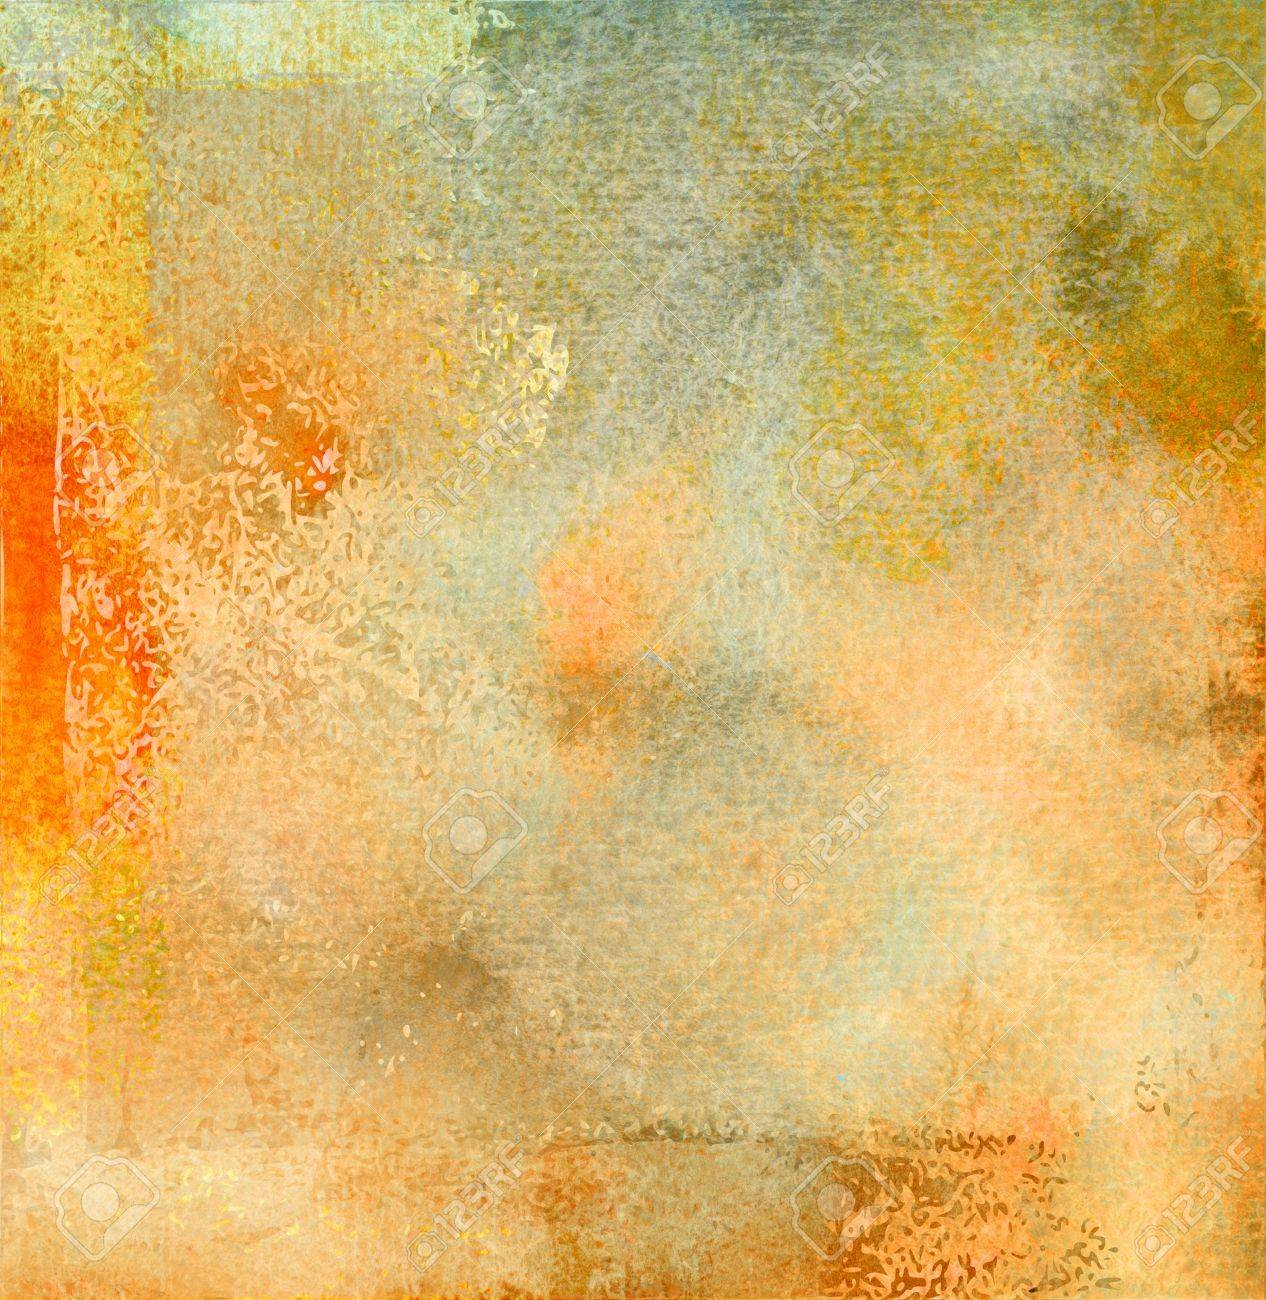 Beige Watercolor With Textures Added Painted Background Stock